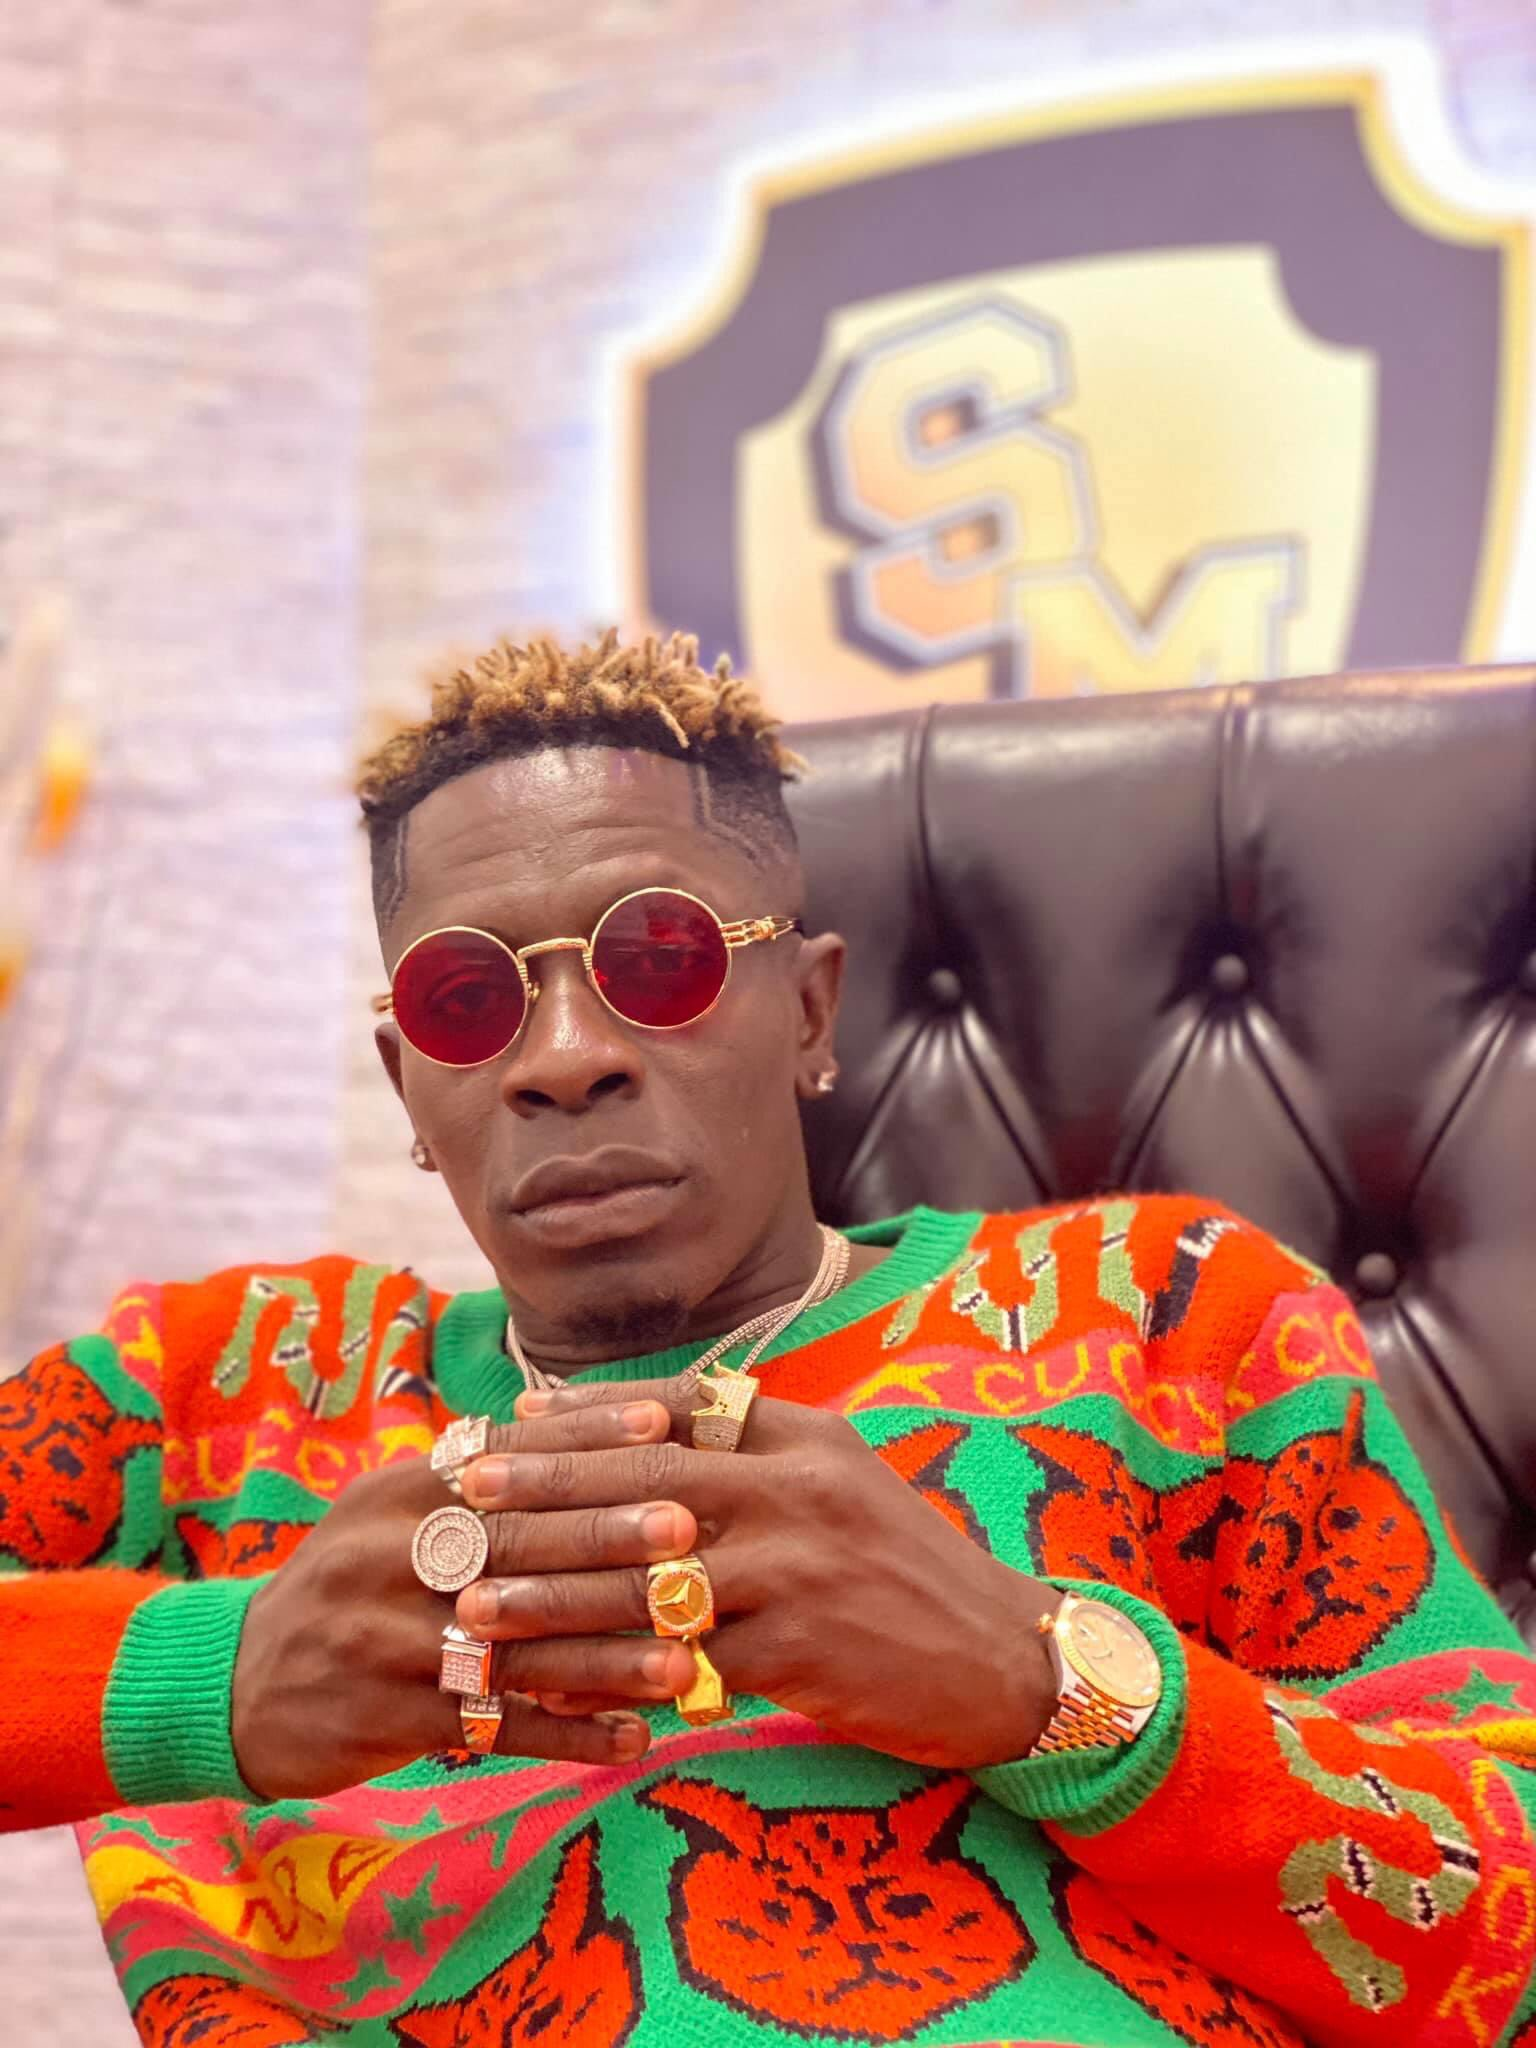 Why Shatta Wale is deleting posts and unfollowing everyone on his social media handles: the inside story